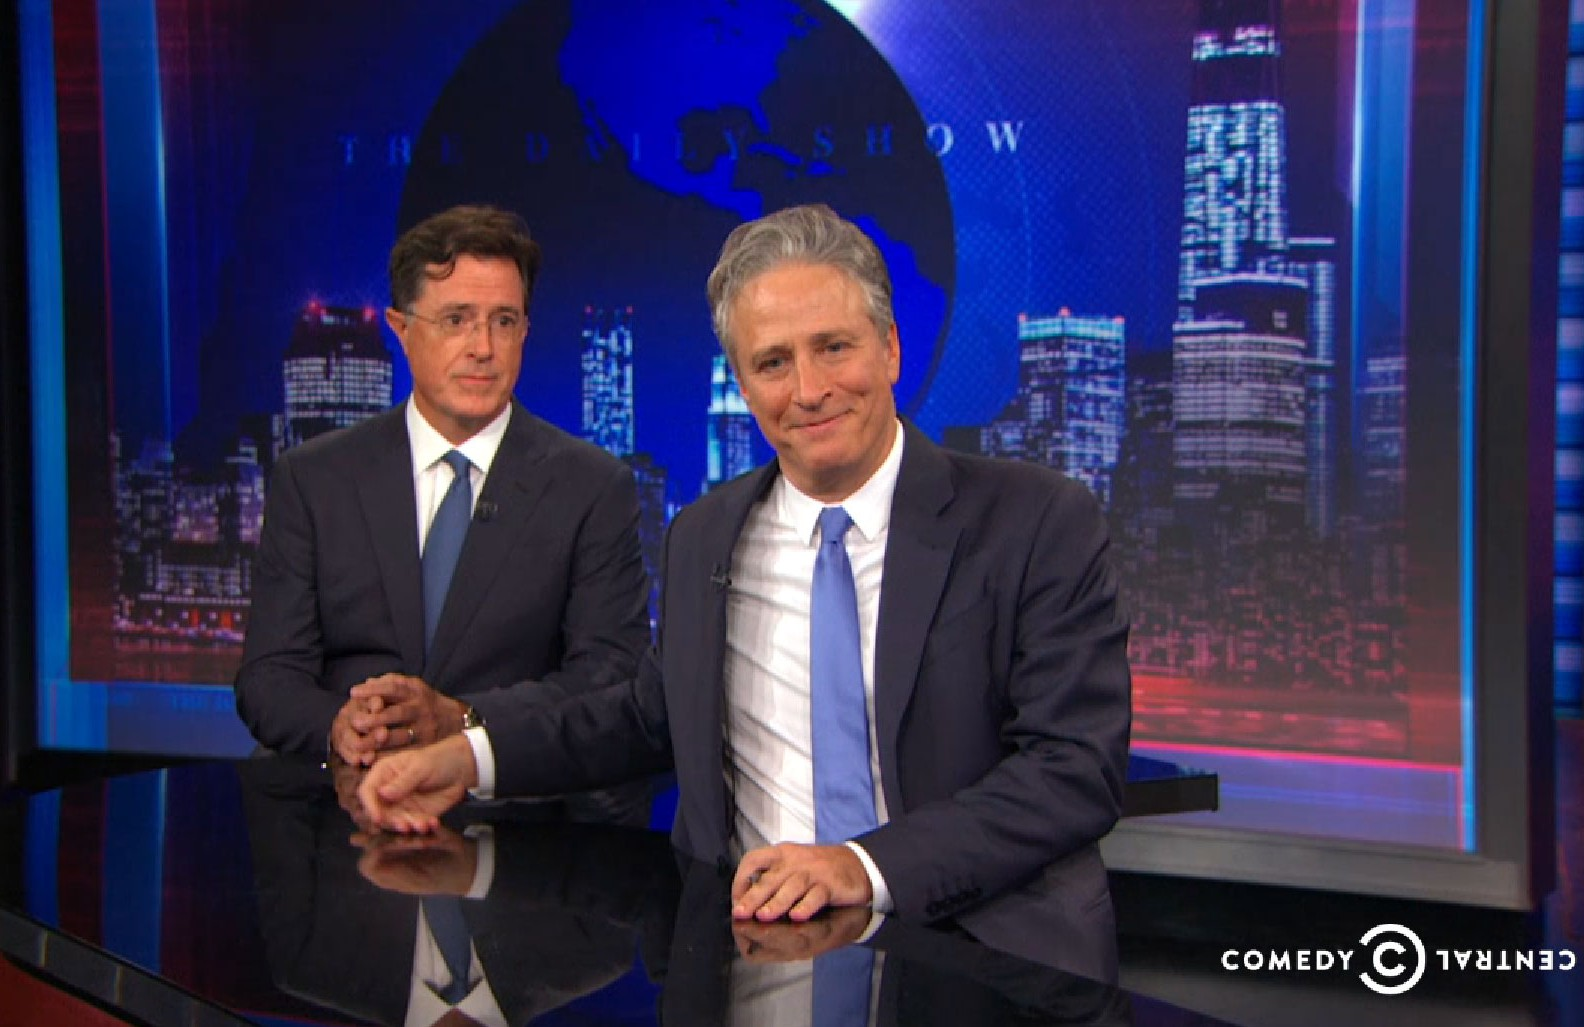 Six of the best moments from Jon Stewart's final ever The Daily Show episode